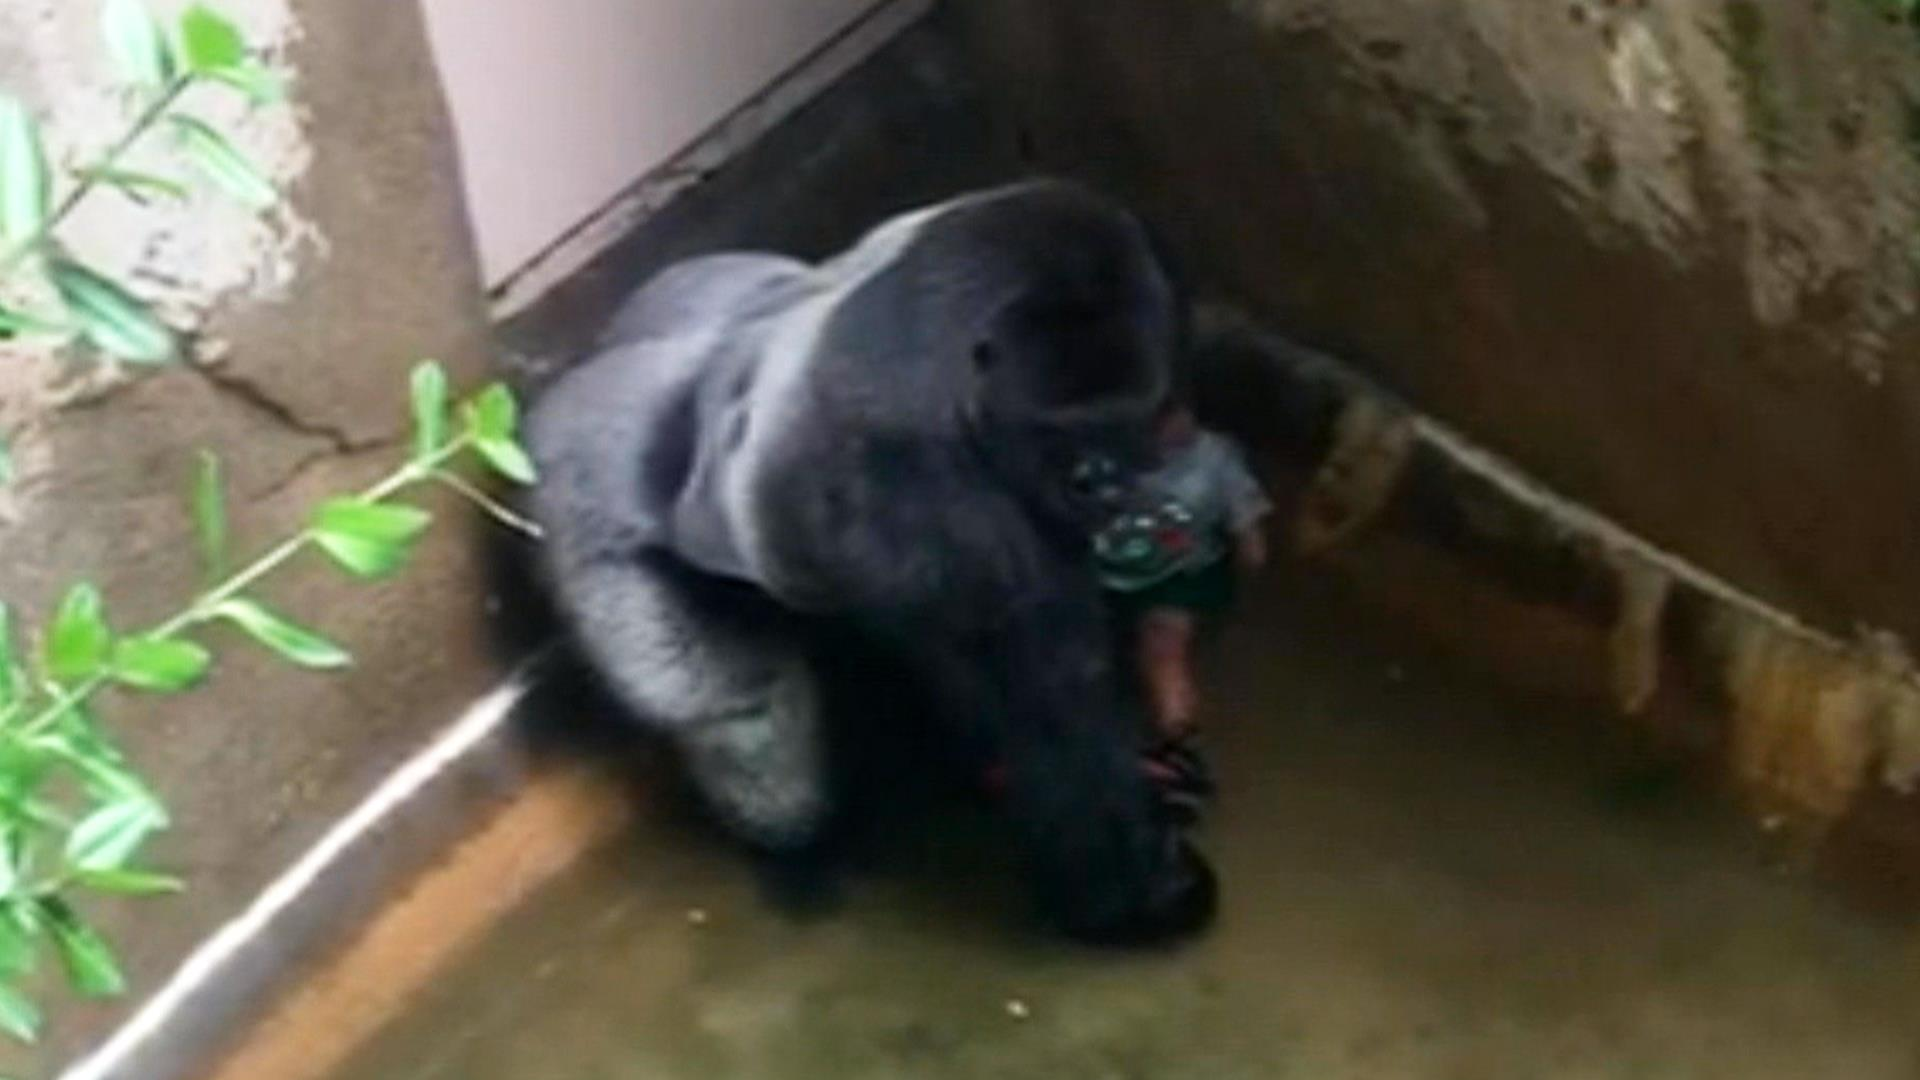 Outrage Grows After Gorilla Harambe Shot Dead at Cincinnati Zoo to Save Tot